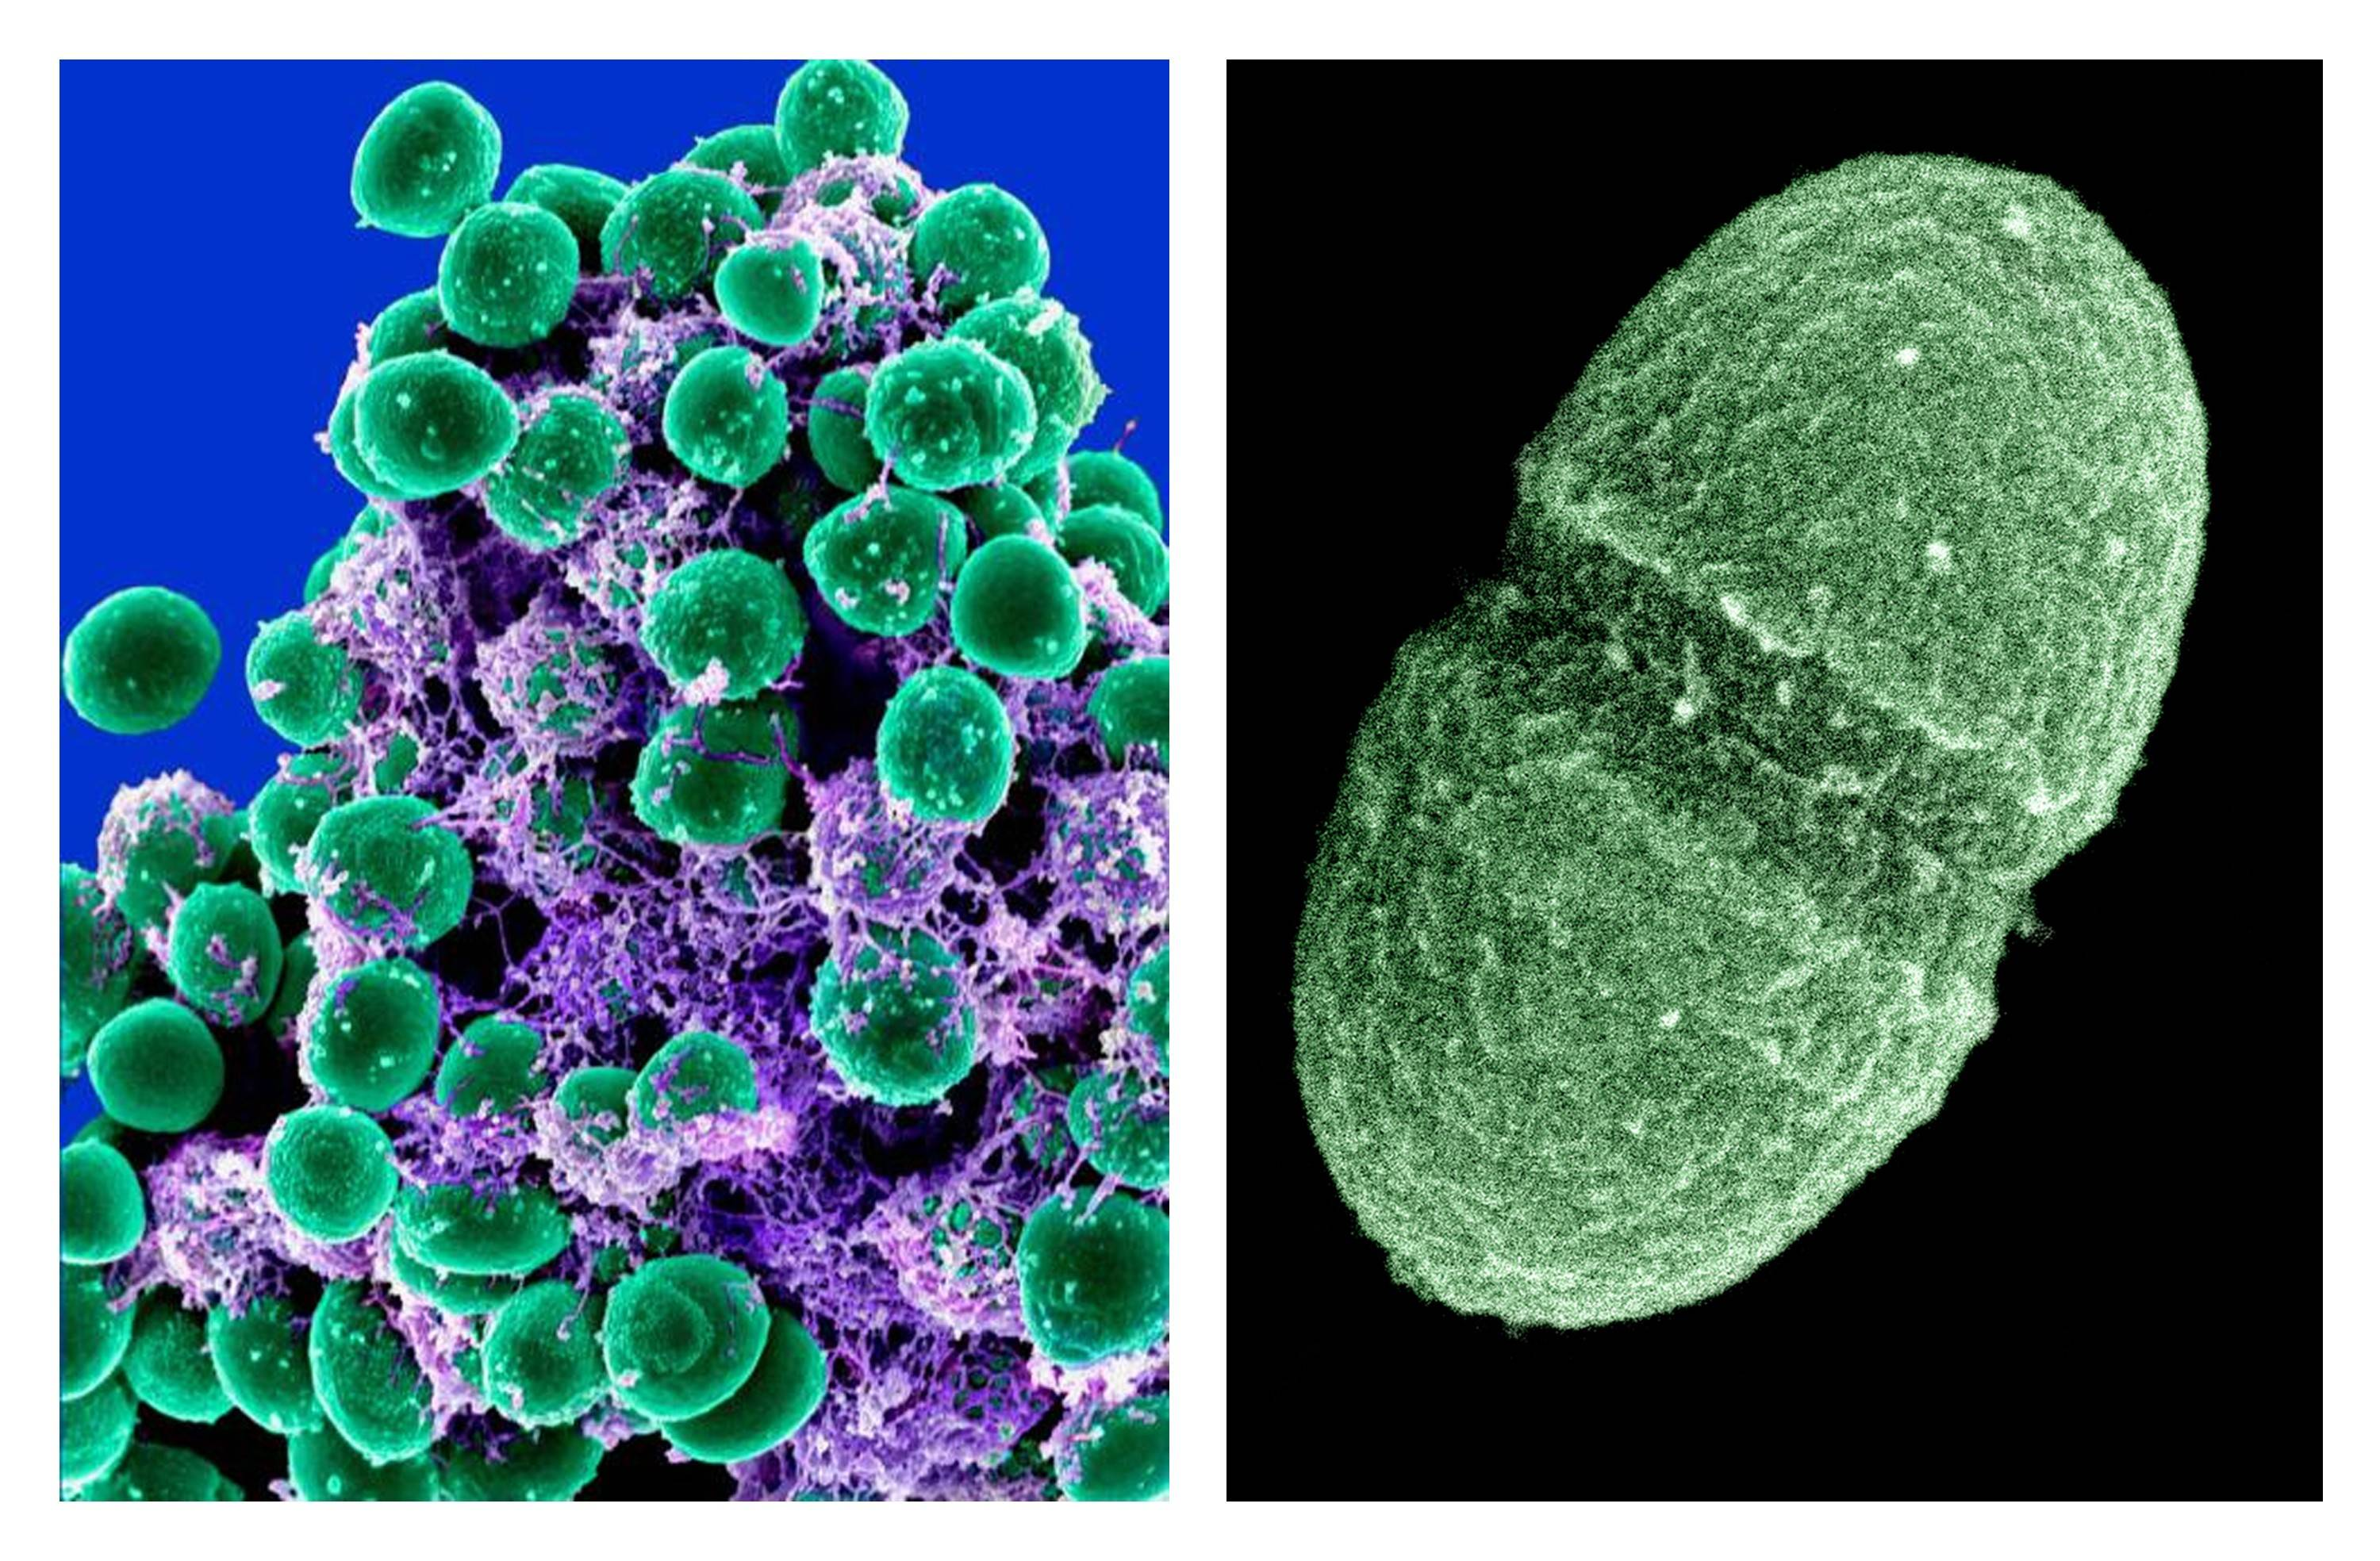 Scientists with the Human Microbiome Project map bacteria, fungi and other microbes, such as Staphylococcus epidermidis bacteria (green), left, and the bacterium, Enterococcus faecalis.